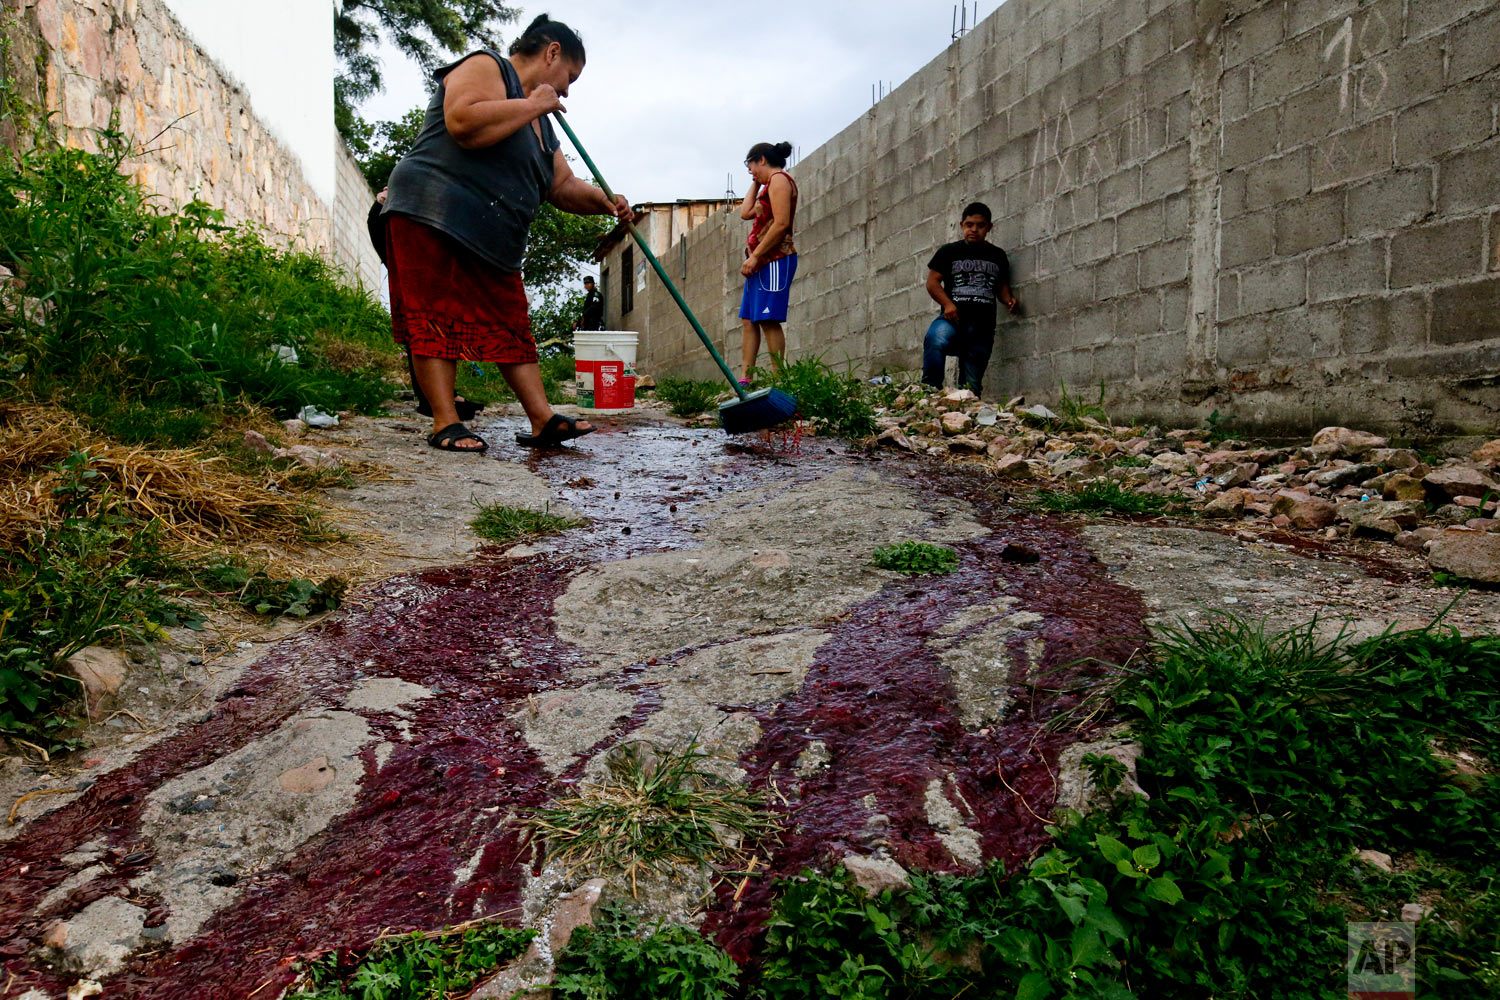 In this Aug. 2, 2018 photo, family members of slain Ronald Blanco try to clean his blood from the alleyway of the Japon neighborhood where the Barrio 18 gang operates Tegucigalpa, Honduras. Family members sprinkled holy water and prayed at the site before working to wash away the blood stains, as passing neighbors gave them their condolences. (AP Photo/Esteban Felix)